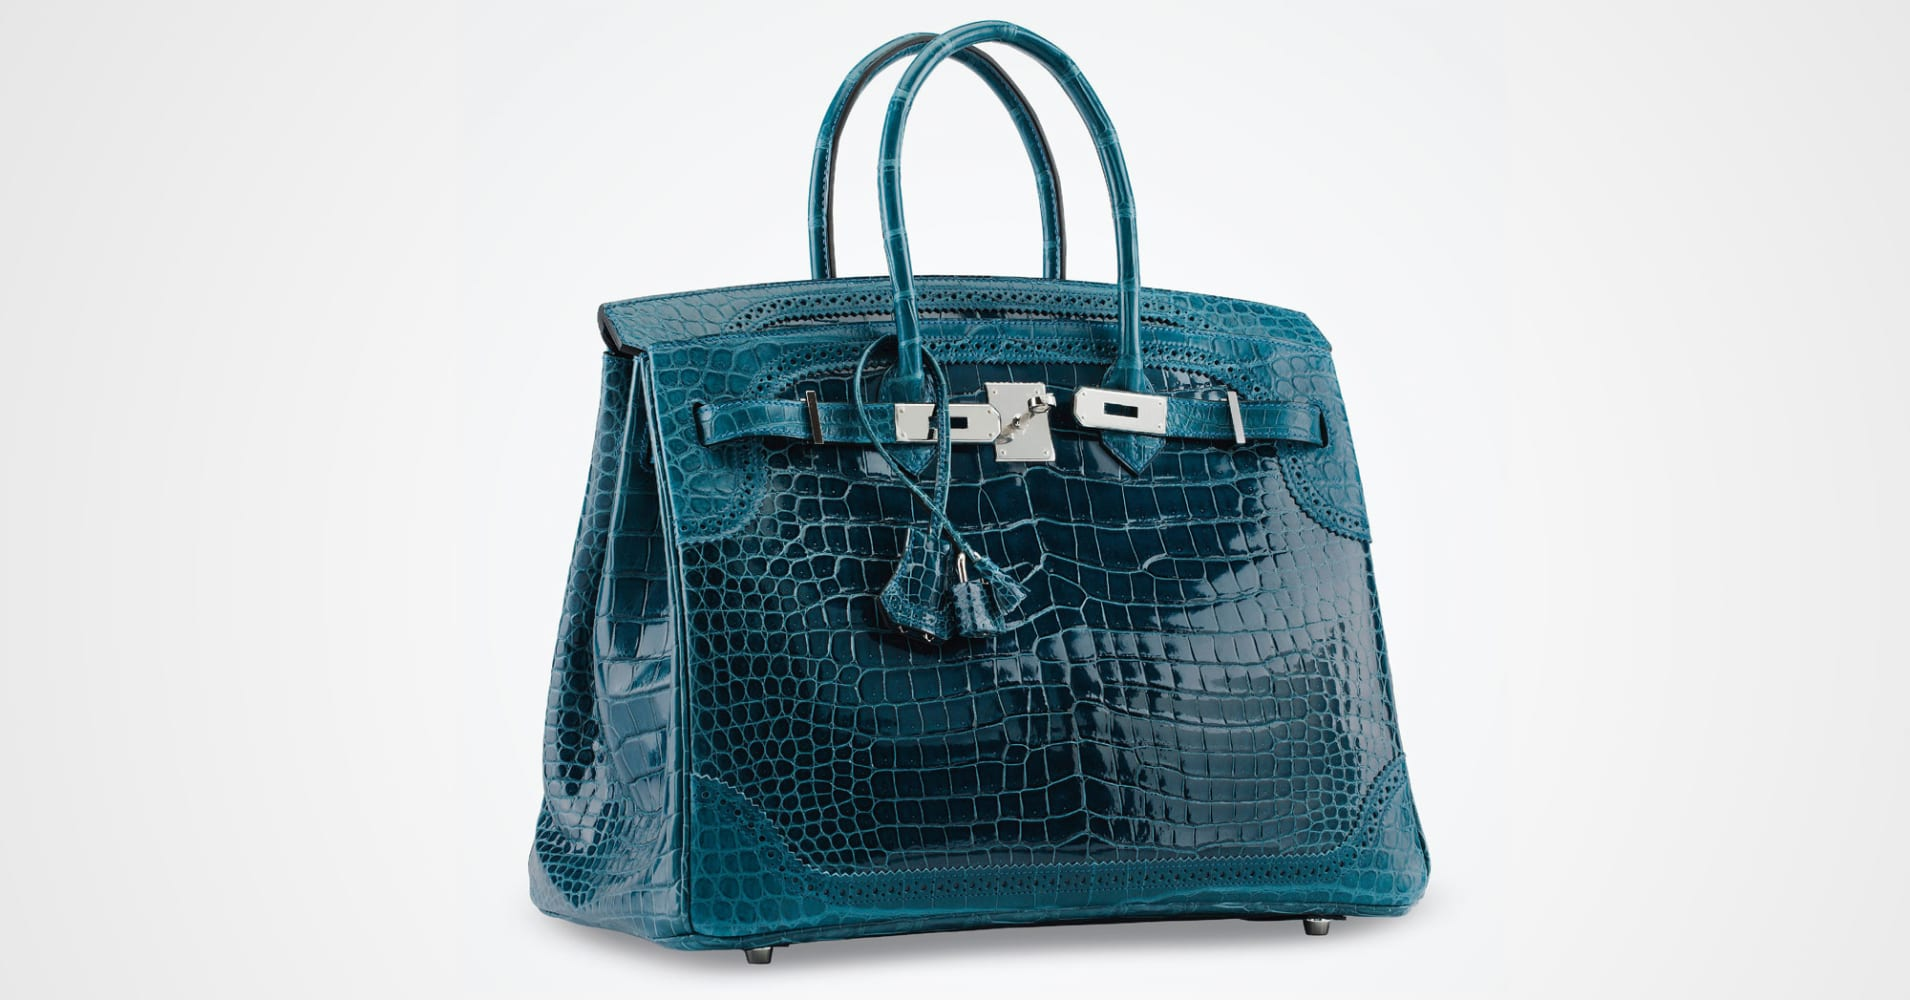 34d7eb067d This Hermès Birkin handbag is expected to sell for over  50